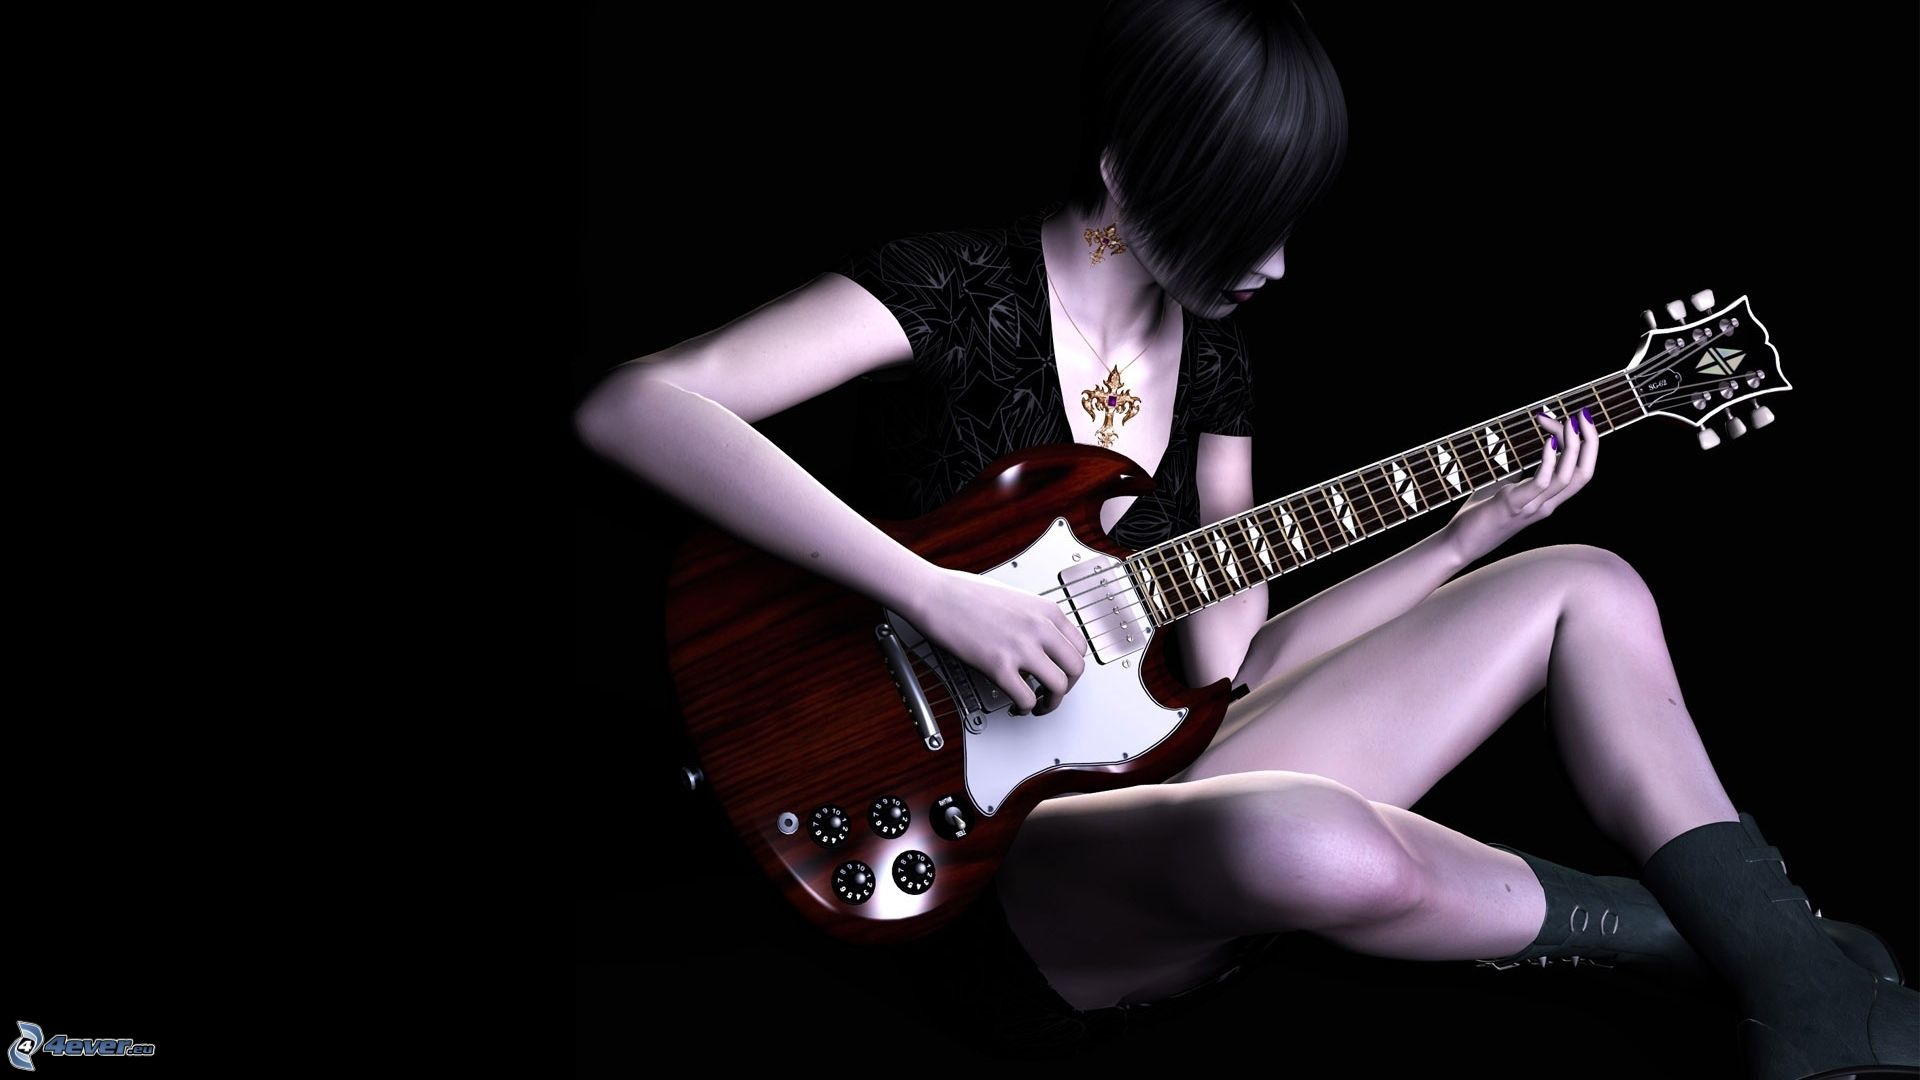 Le grand secret pour draguer avec une guitare - YouTube